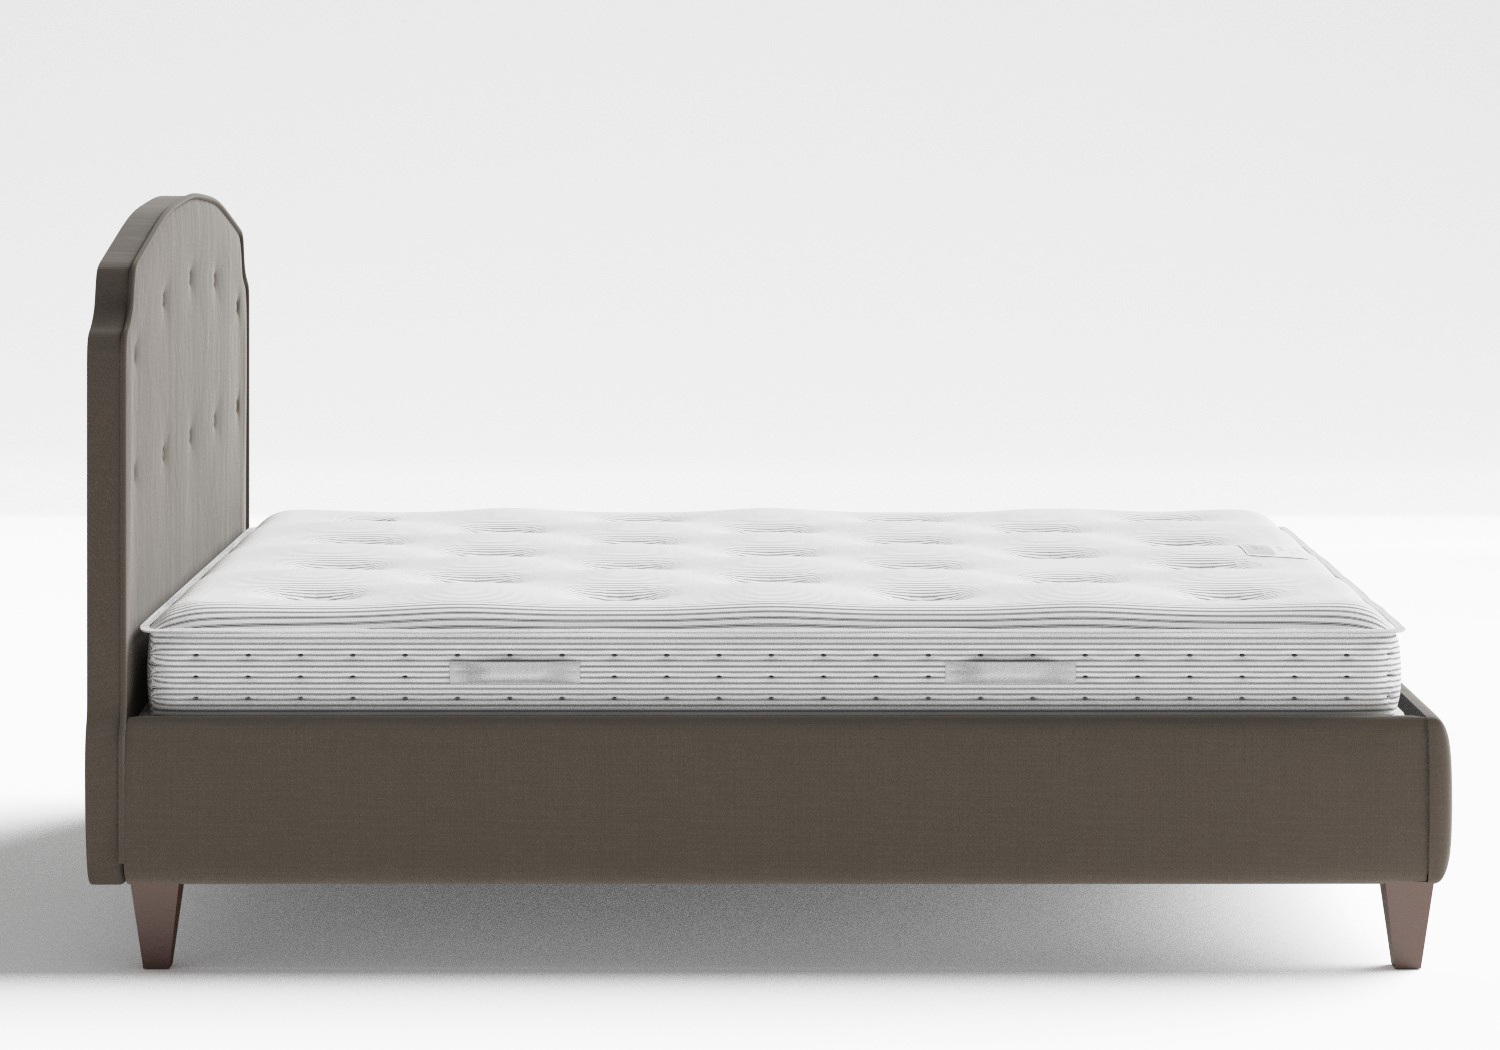 Lide Upholstered Bed in Grey fabric with buttoning shown with Juno 1 mattress